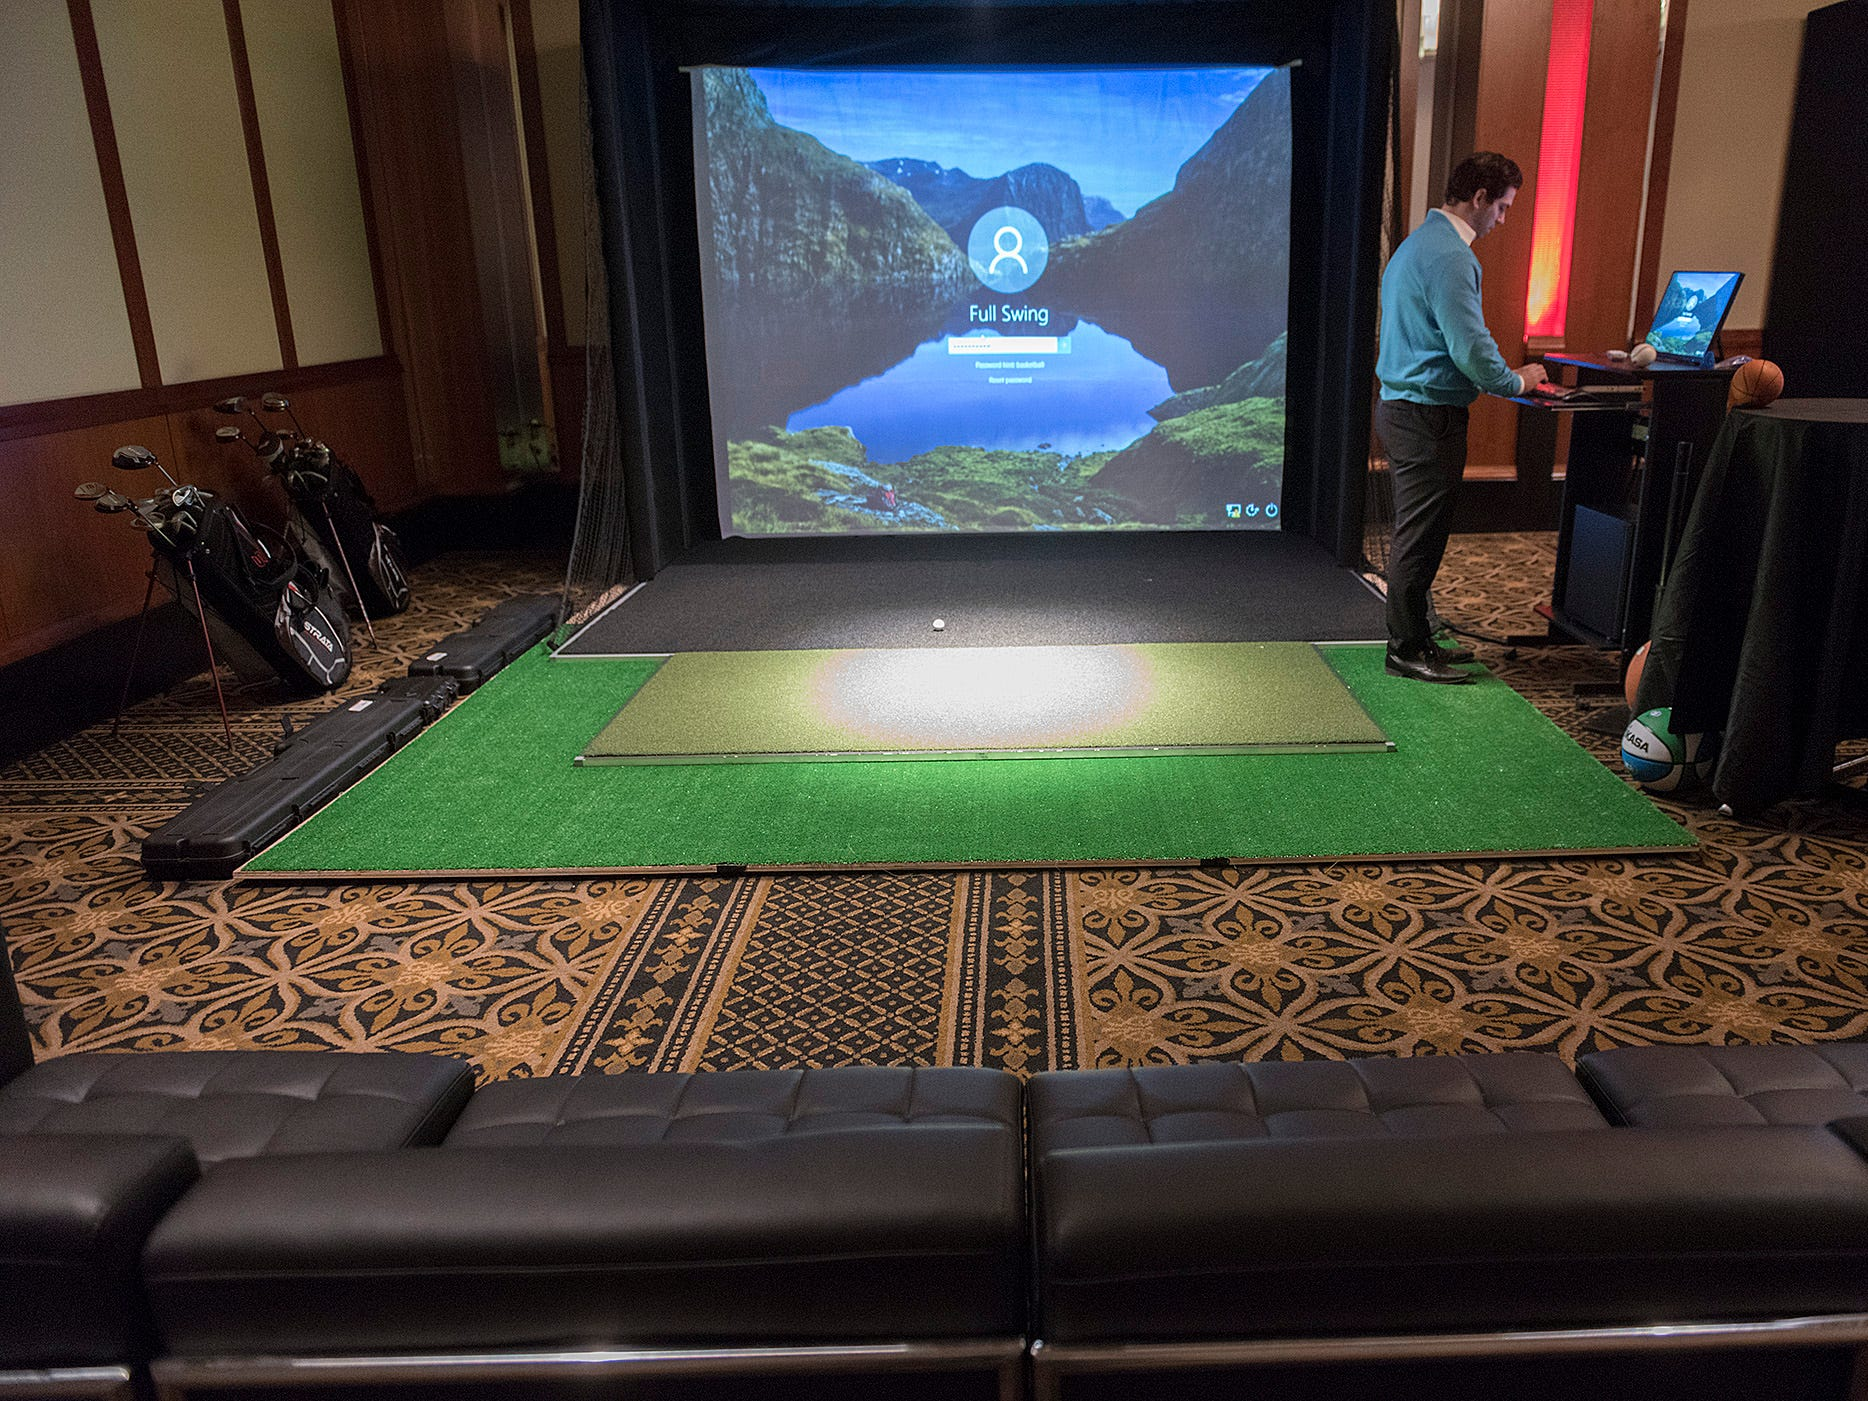 Sam Mass sets up a game. Each screen area has comfortable seating, seen in the foreground.